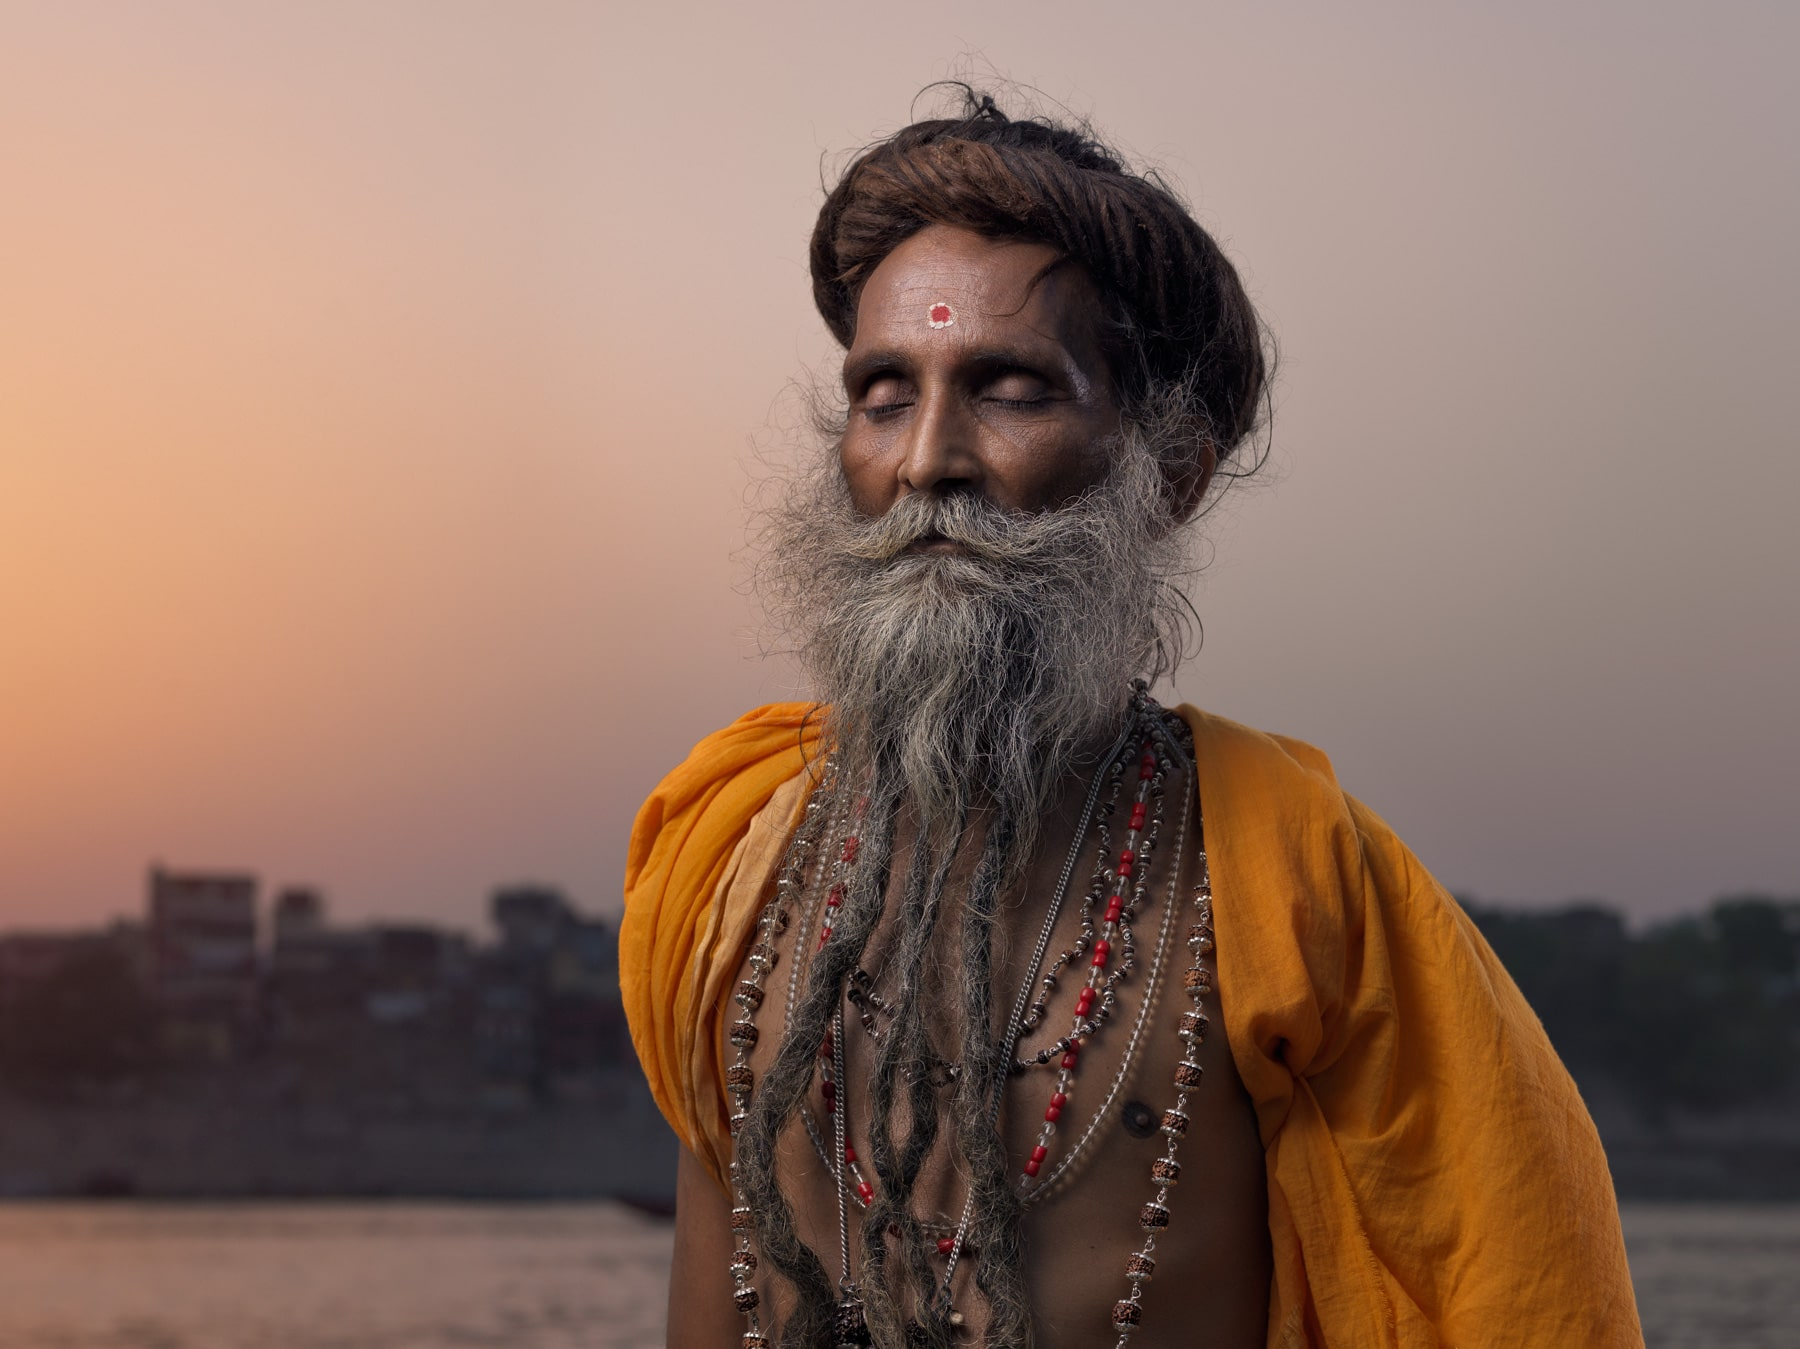 Portraits of holy men, Sadhu, Aghori India / Varanasi / Benares / Kashi Copyright © by Gerry Pacher